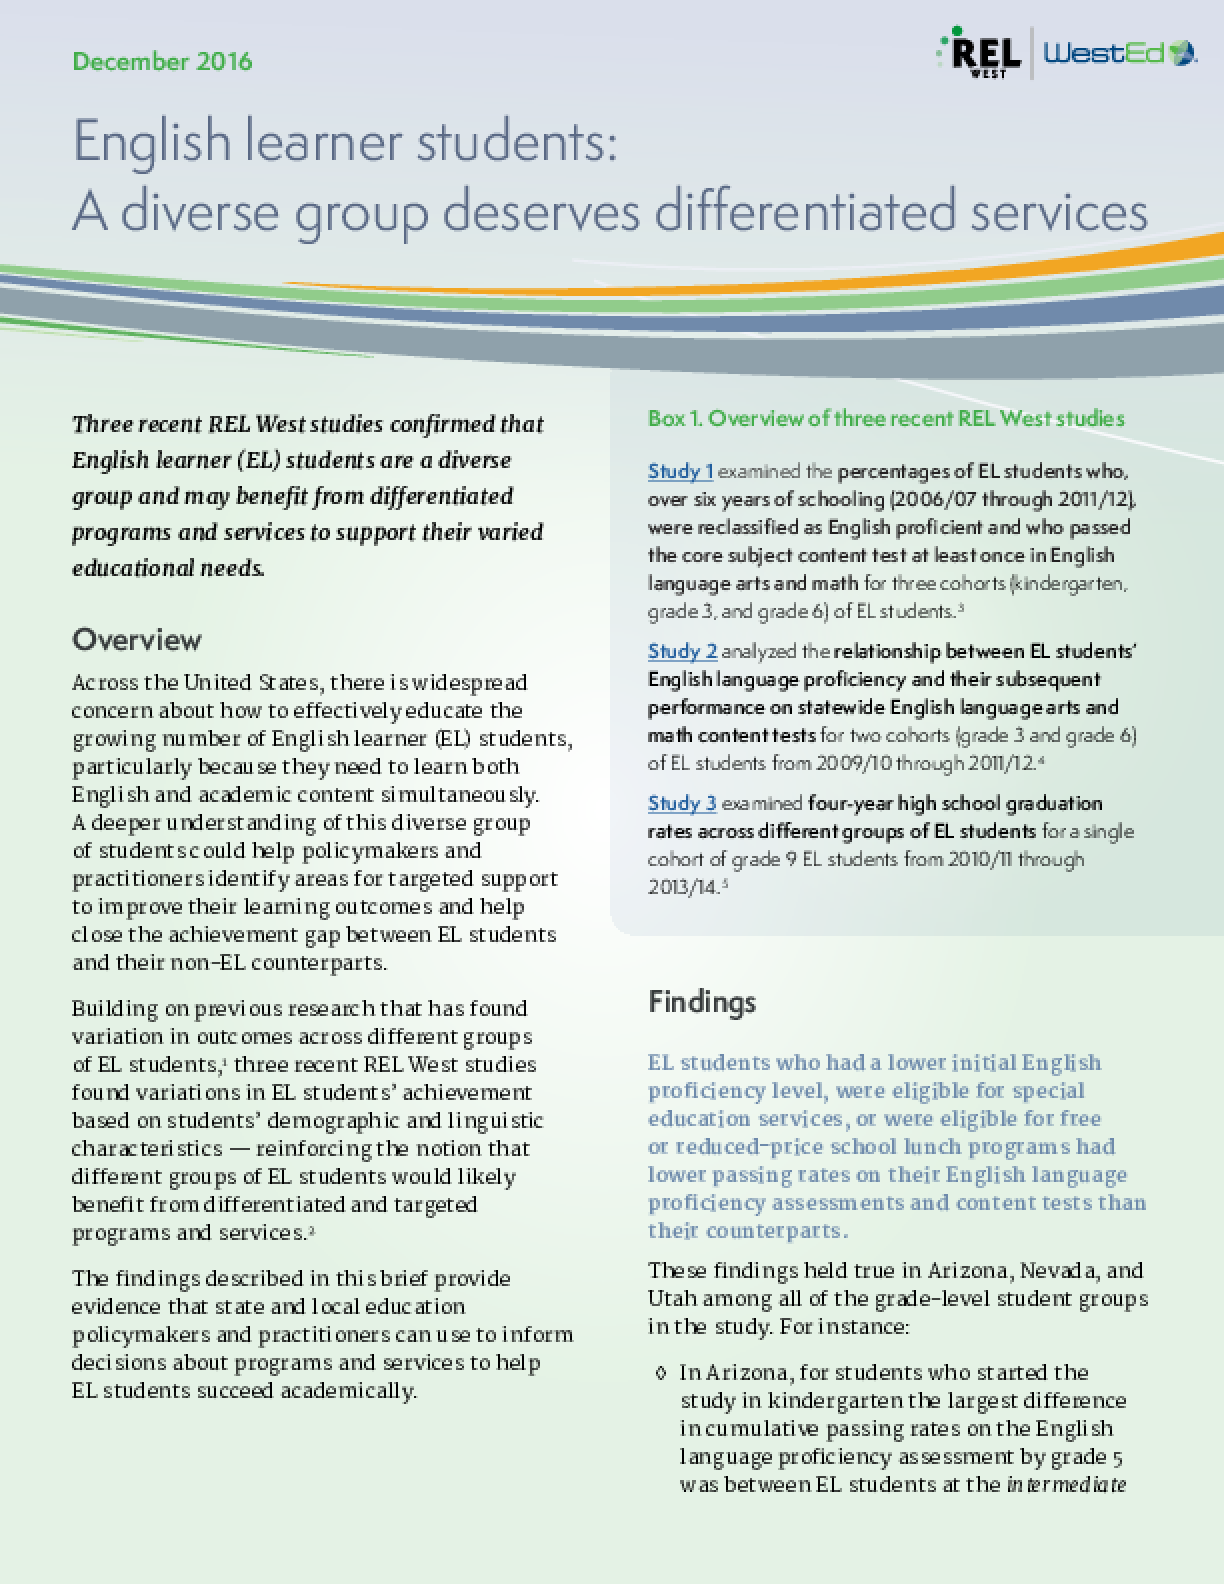 English Learner Students: A Diverse Group Deserves Differentiated Services